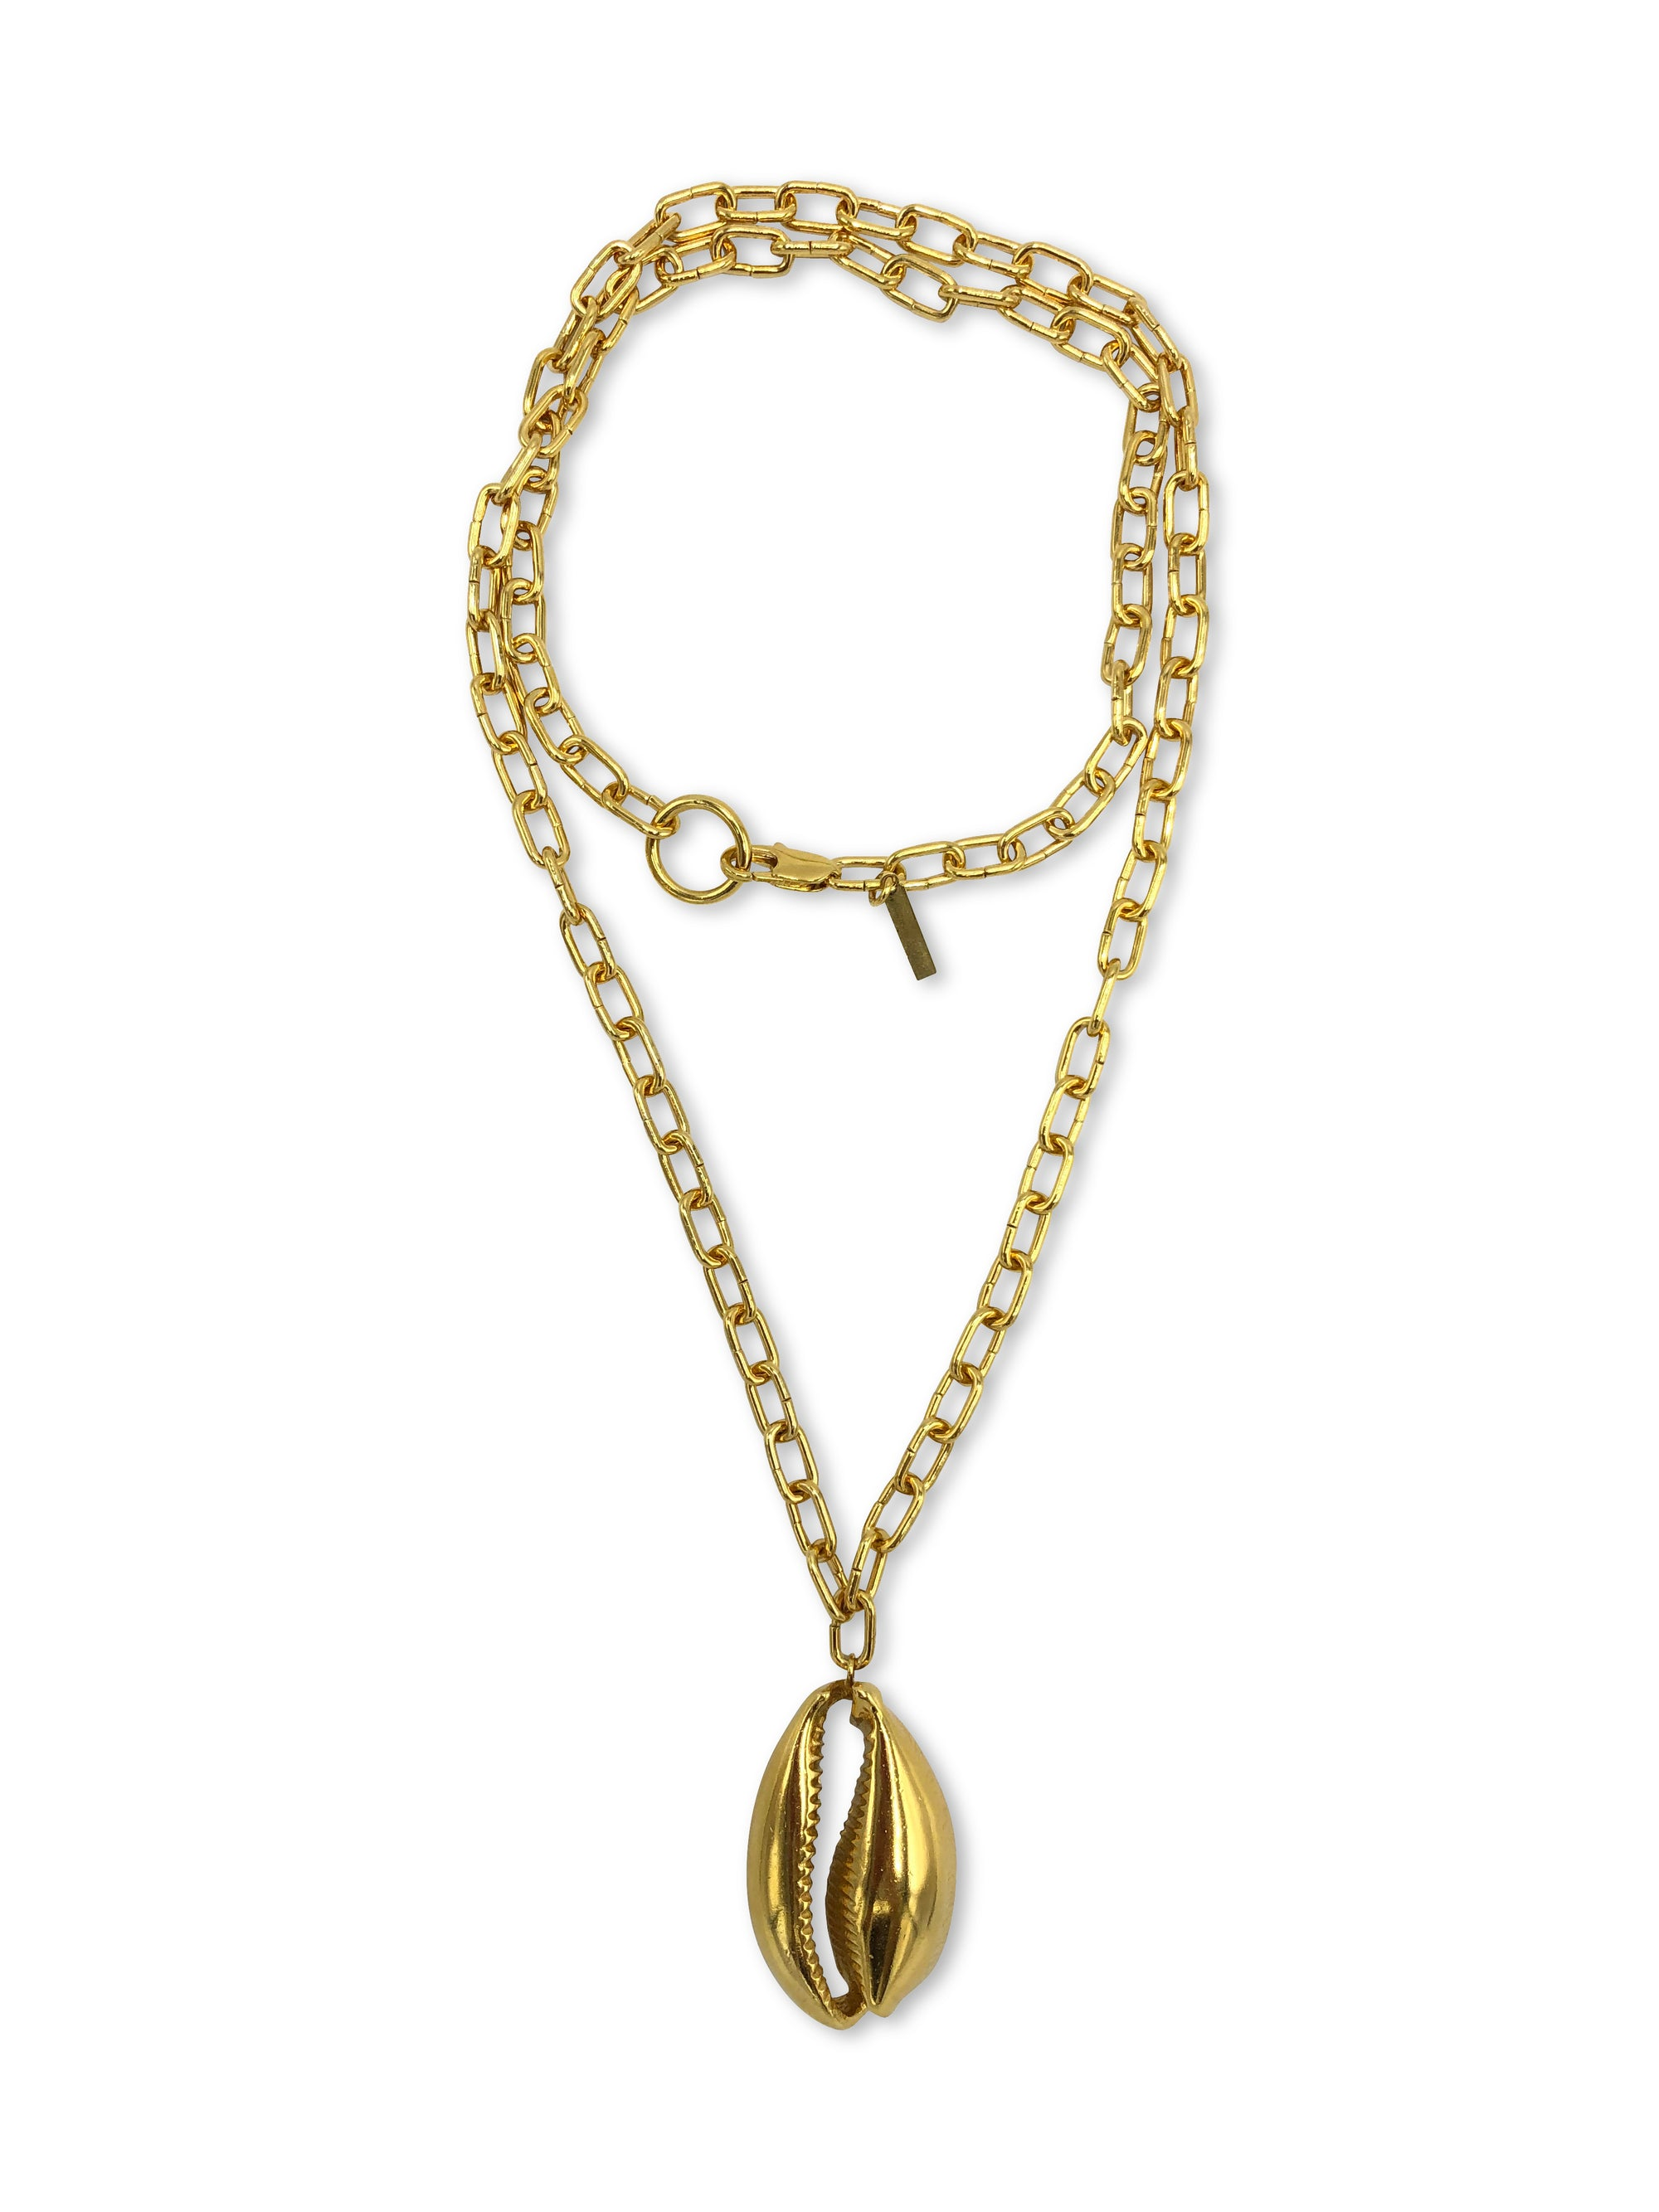 Gold Bel Mare Cowrie Seashell Pendant Charm Chain Necklace-Necklaces-JAREDJAMIN Jewelry Online-JARED JAMIN